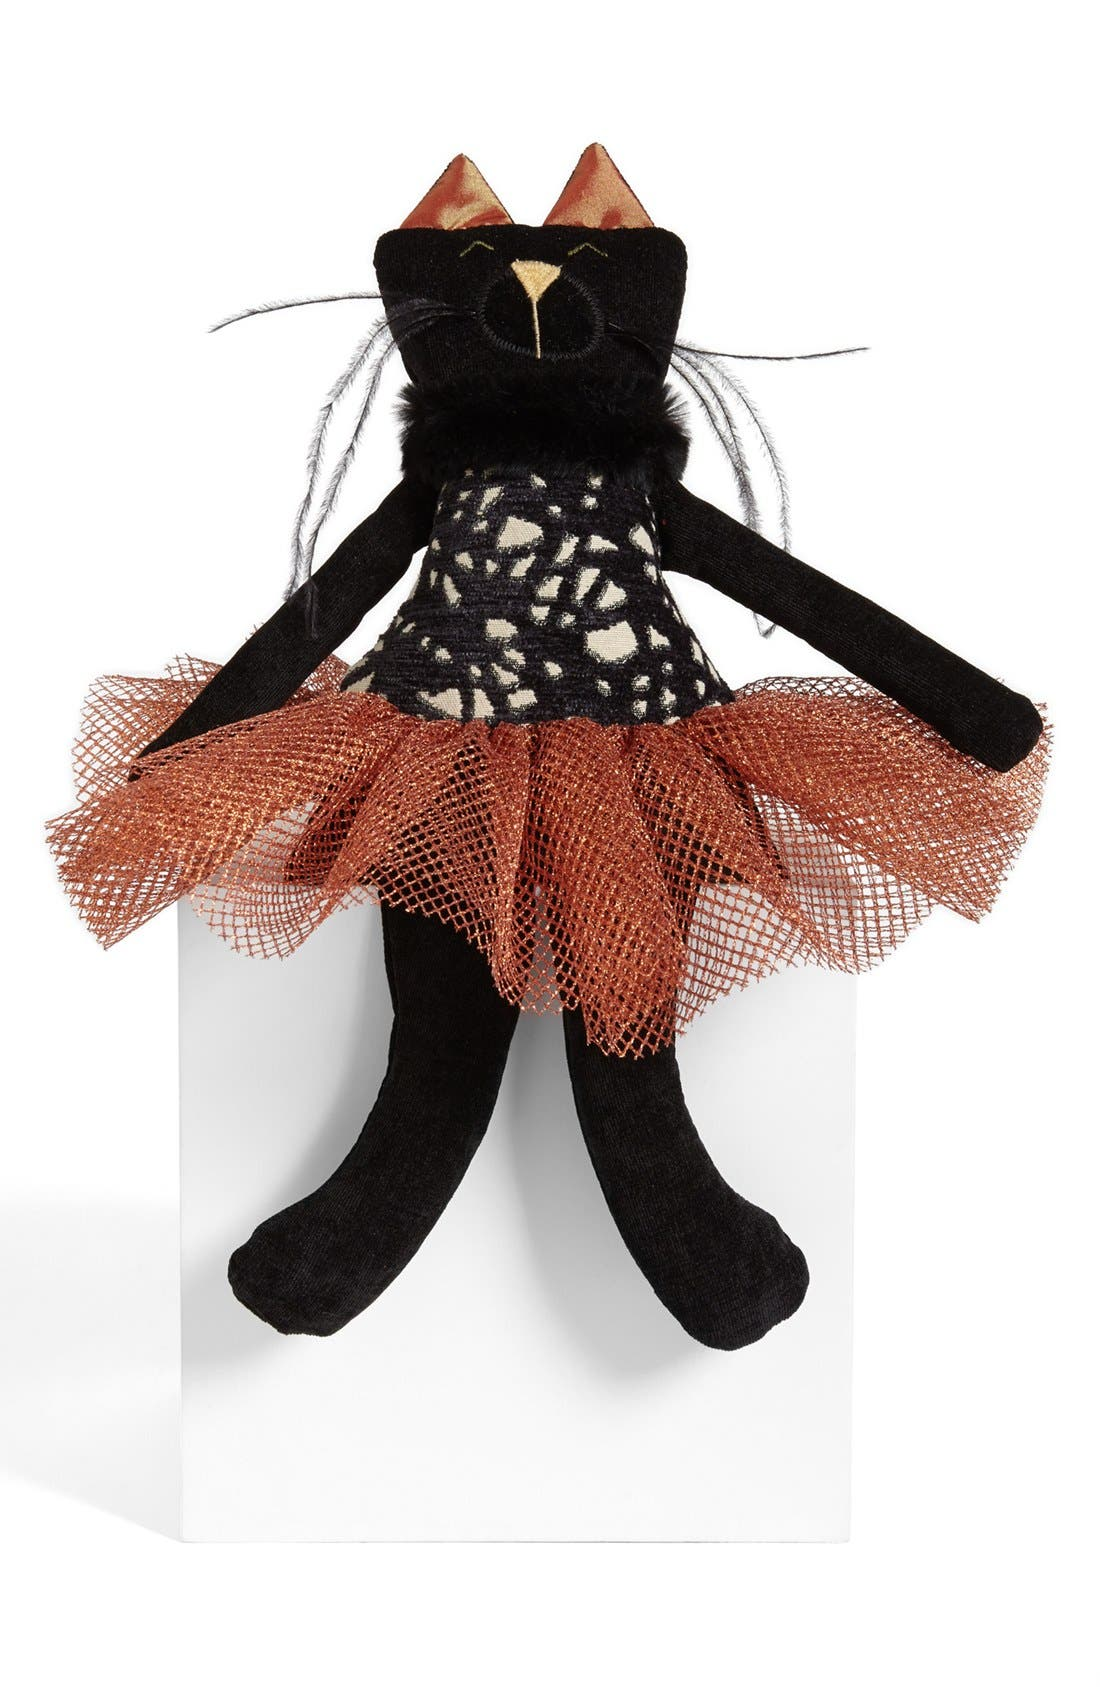 Main Image - Woof & Poof 'Party Cat' Doll